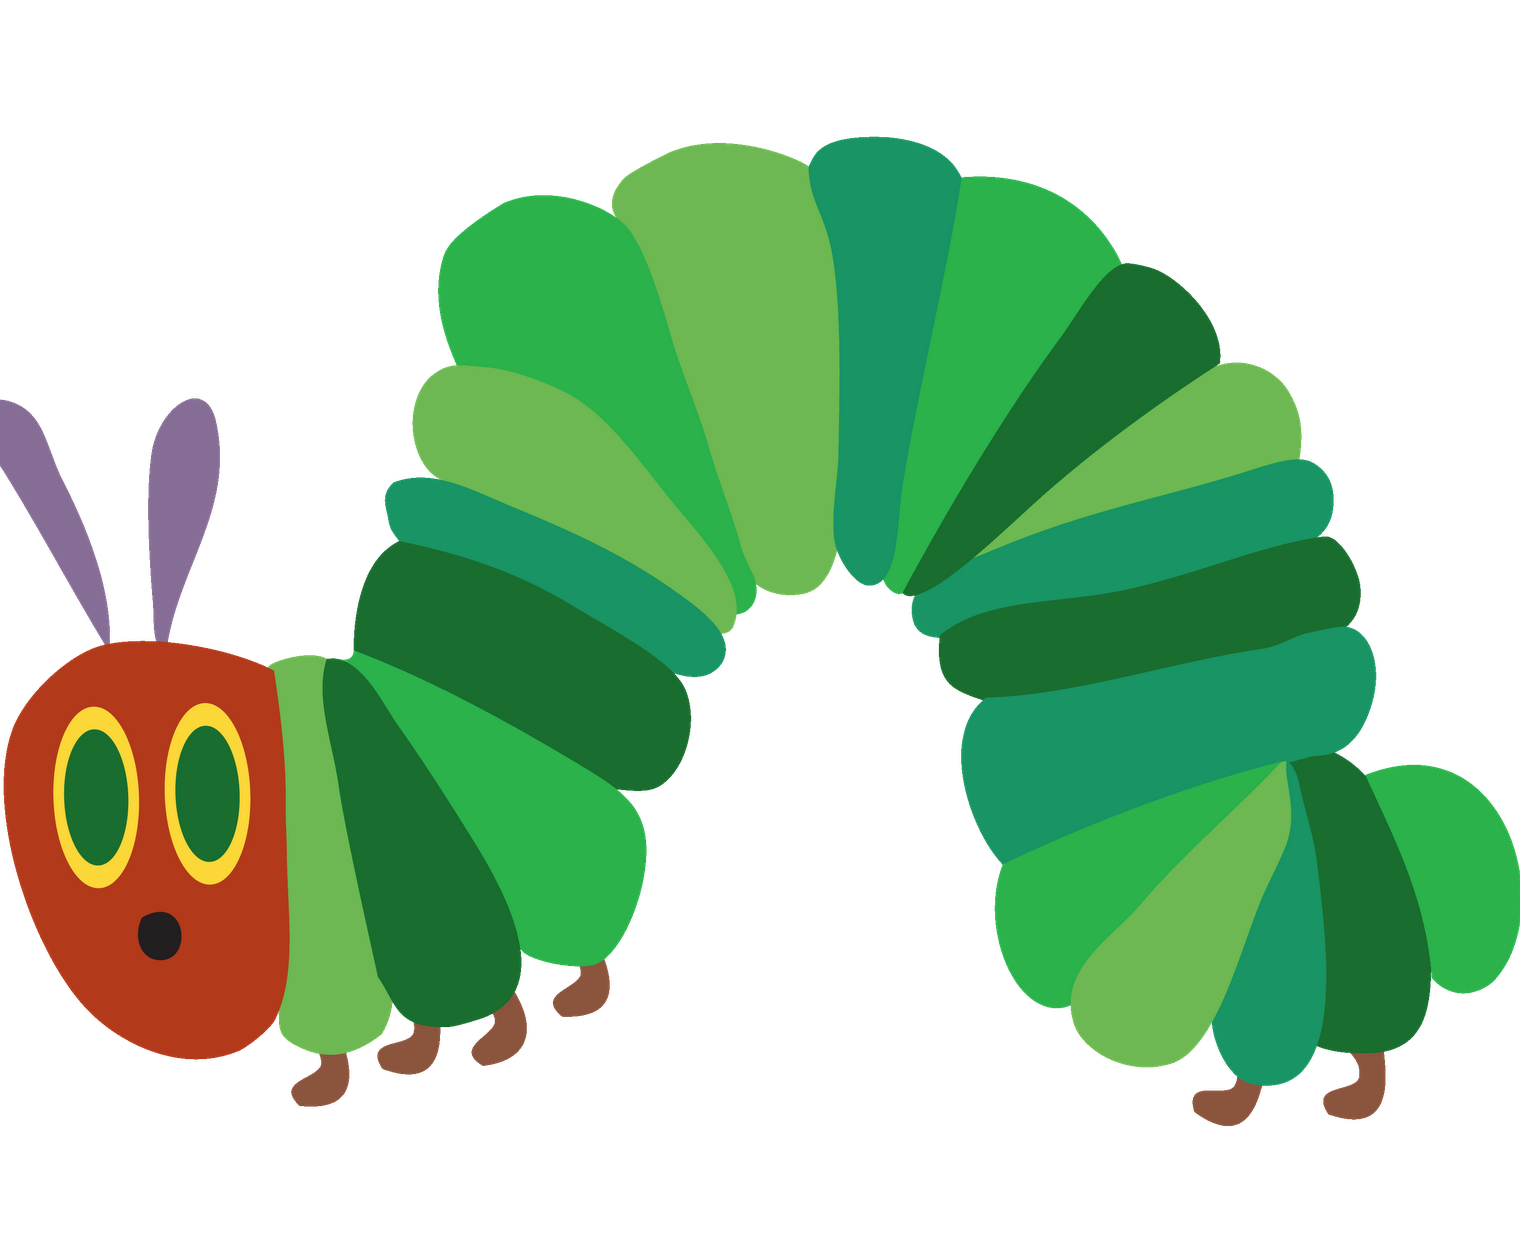 Very Hungry Caterpillar Png - The Very Hungry Caterpillar At The Kay Meek Centre West Vancouver /u003E, Transparent background PNG HD thumbnail